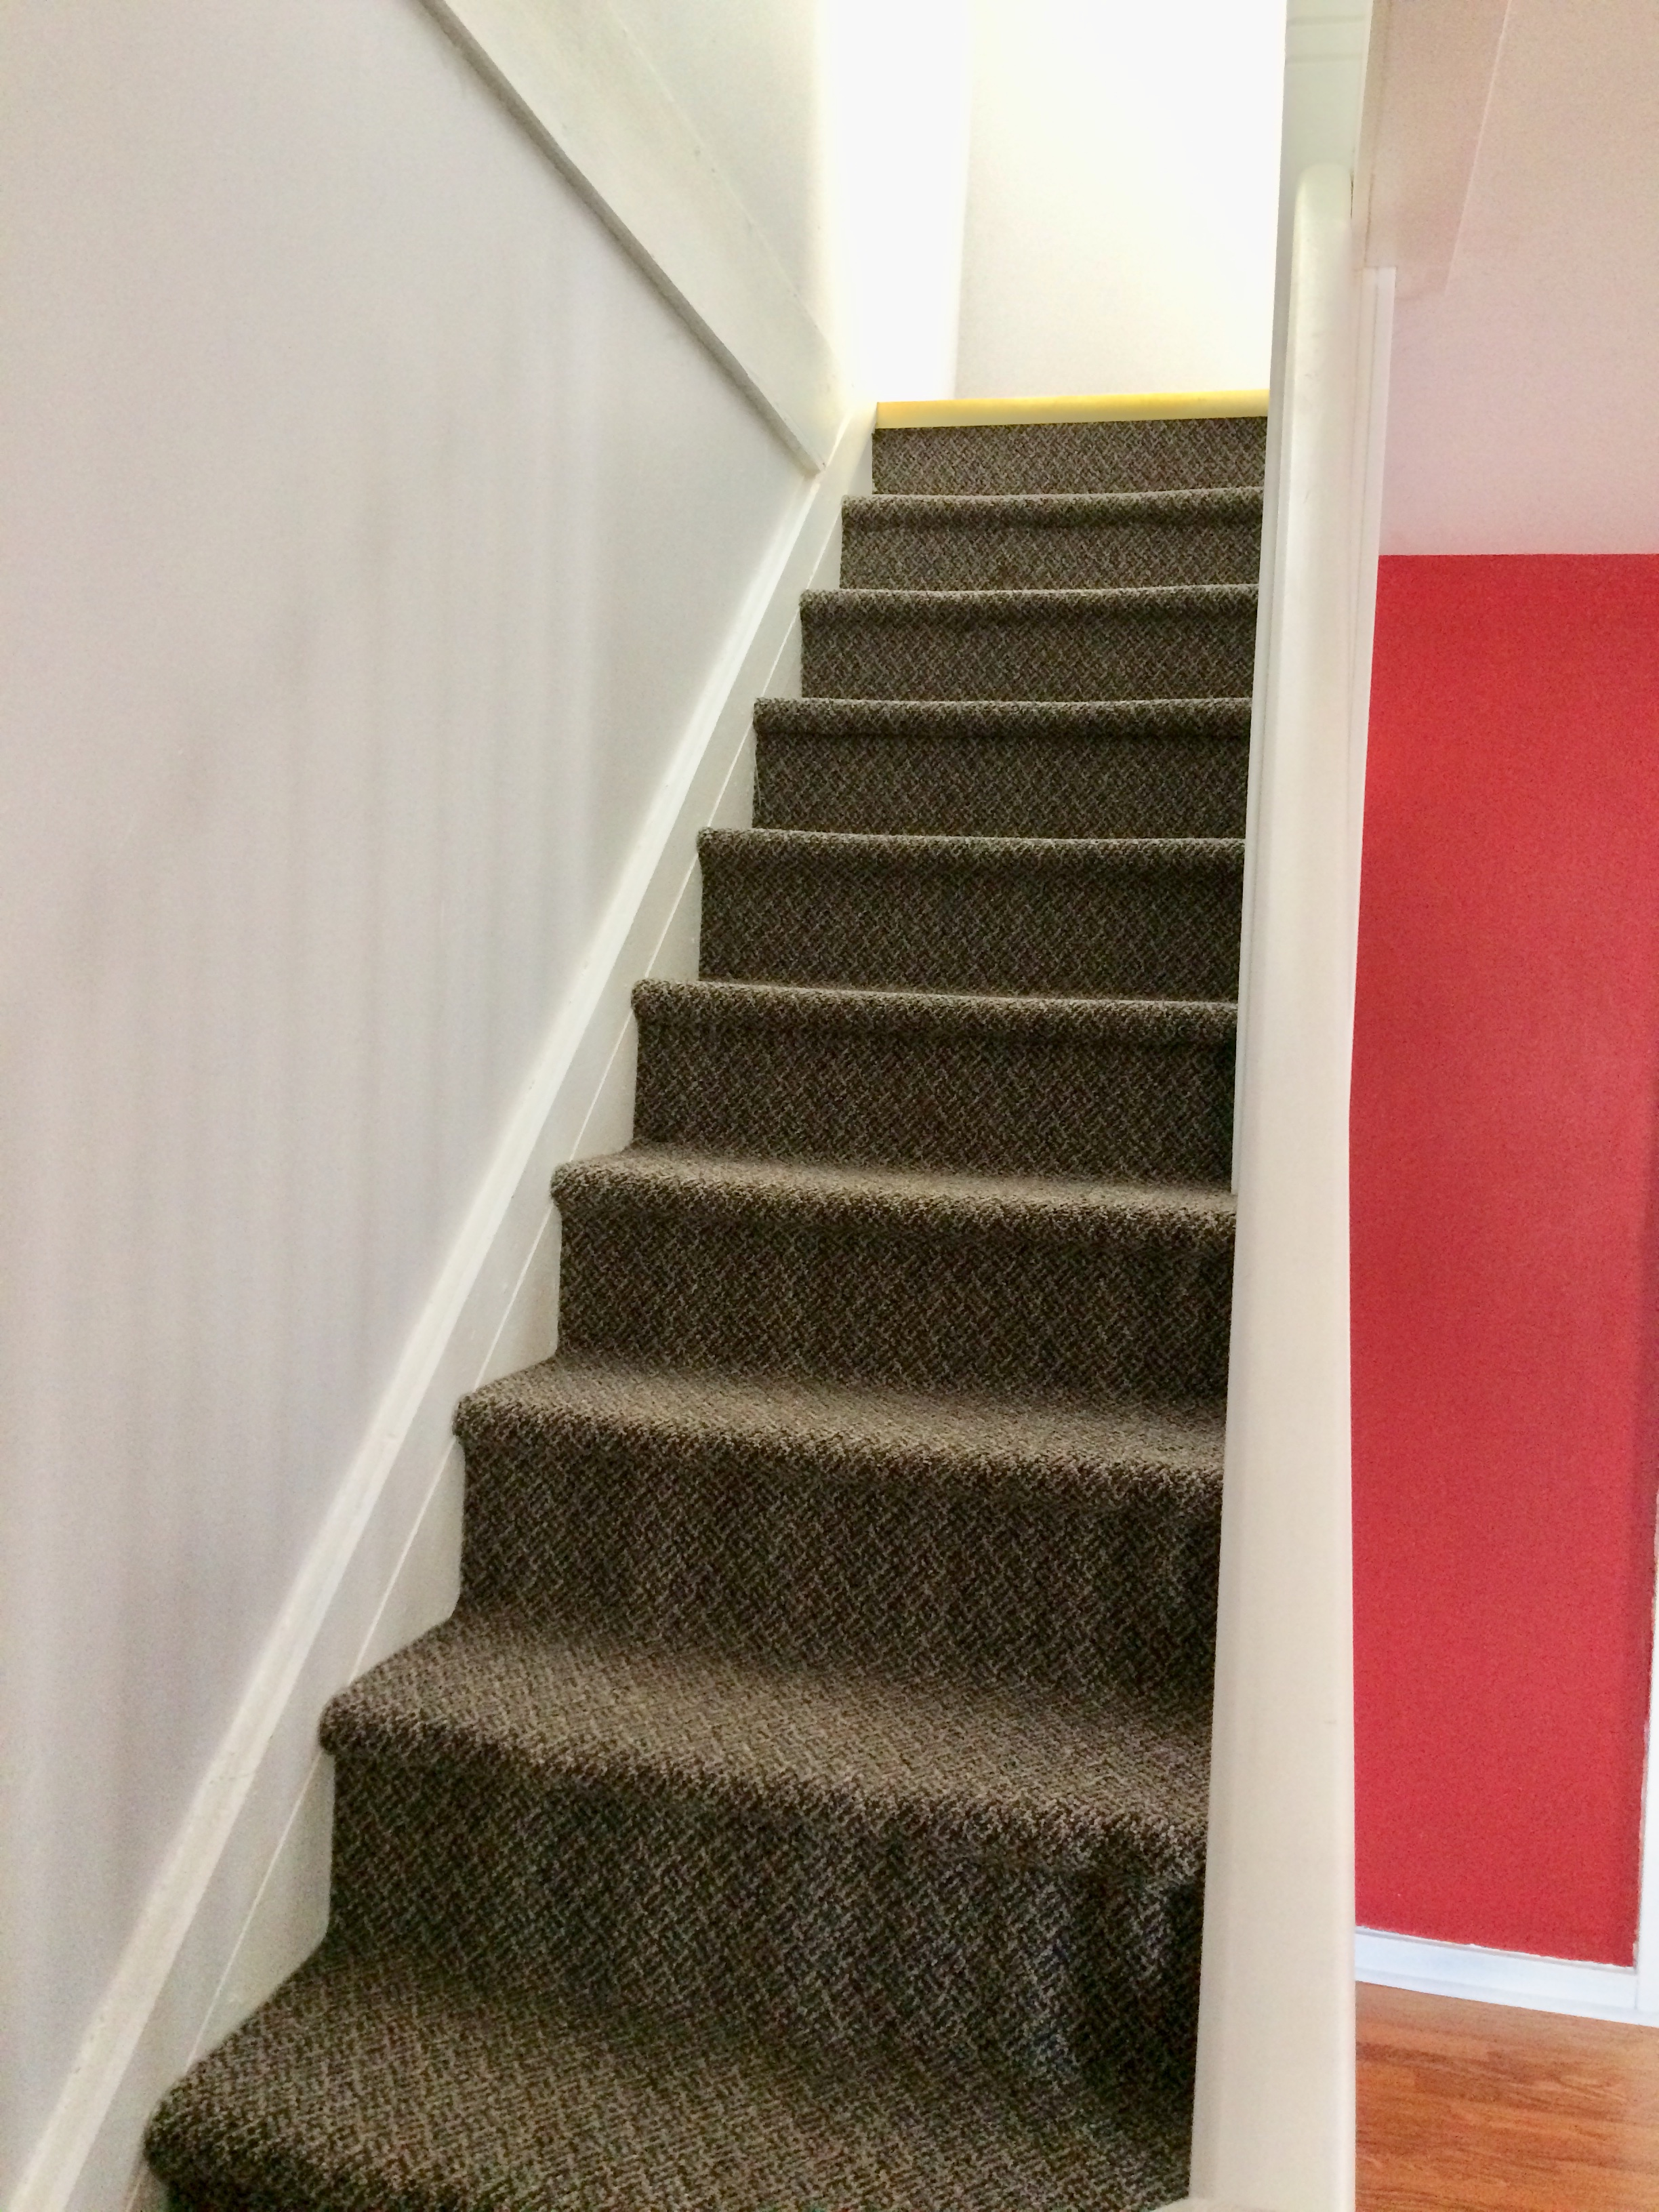 7. Staircase